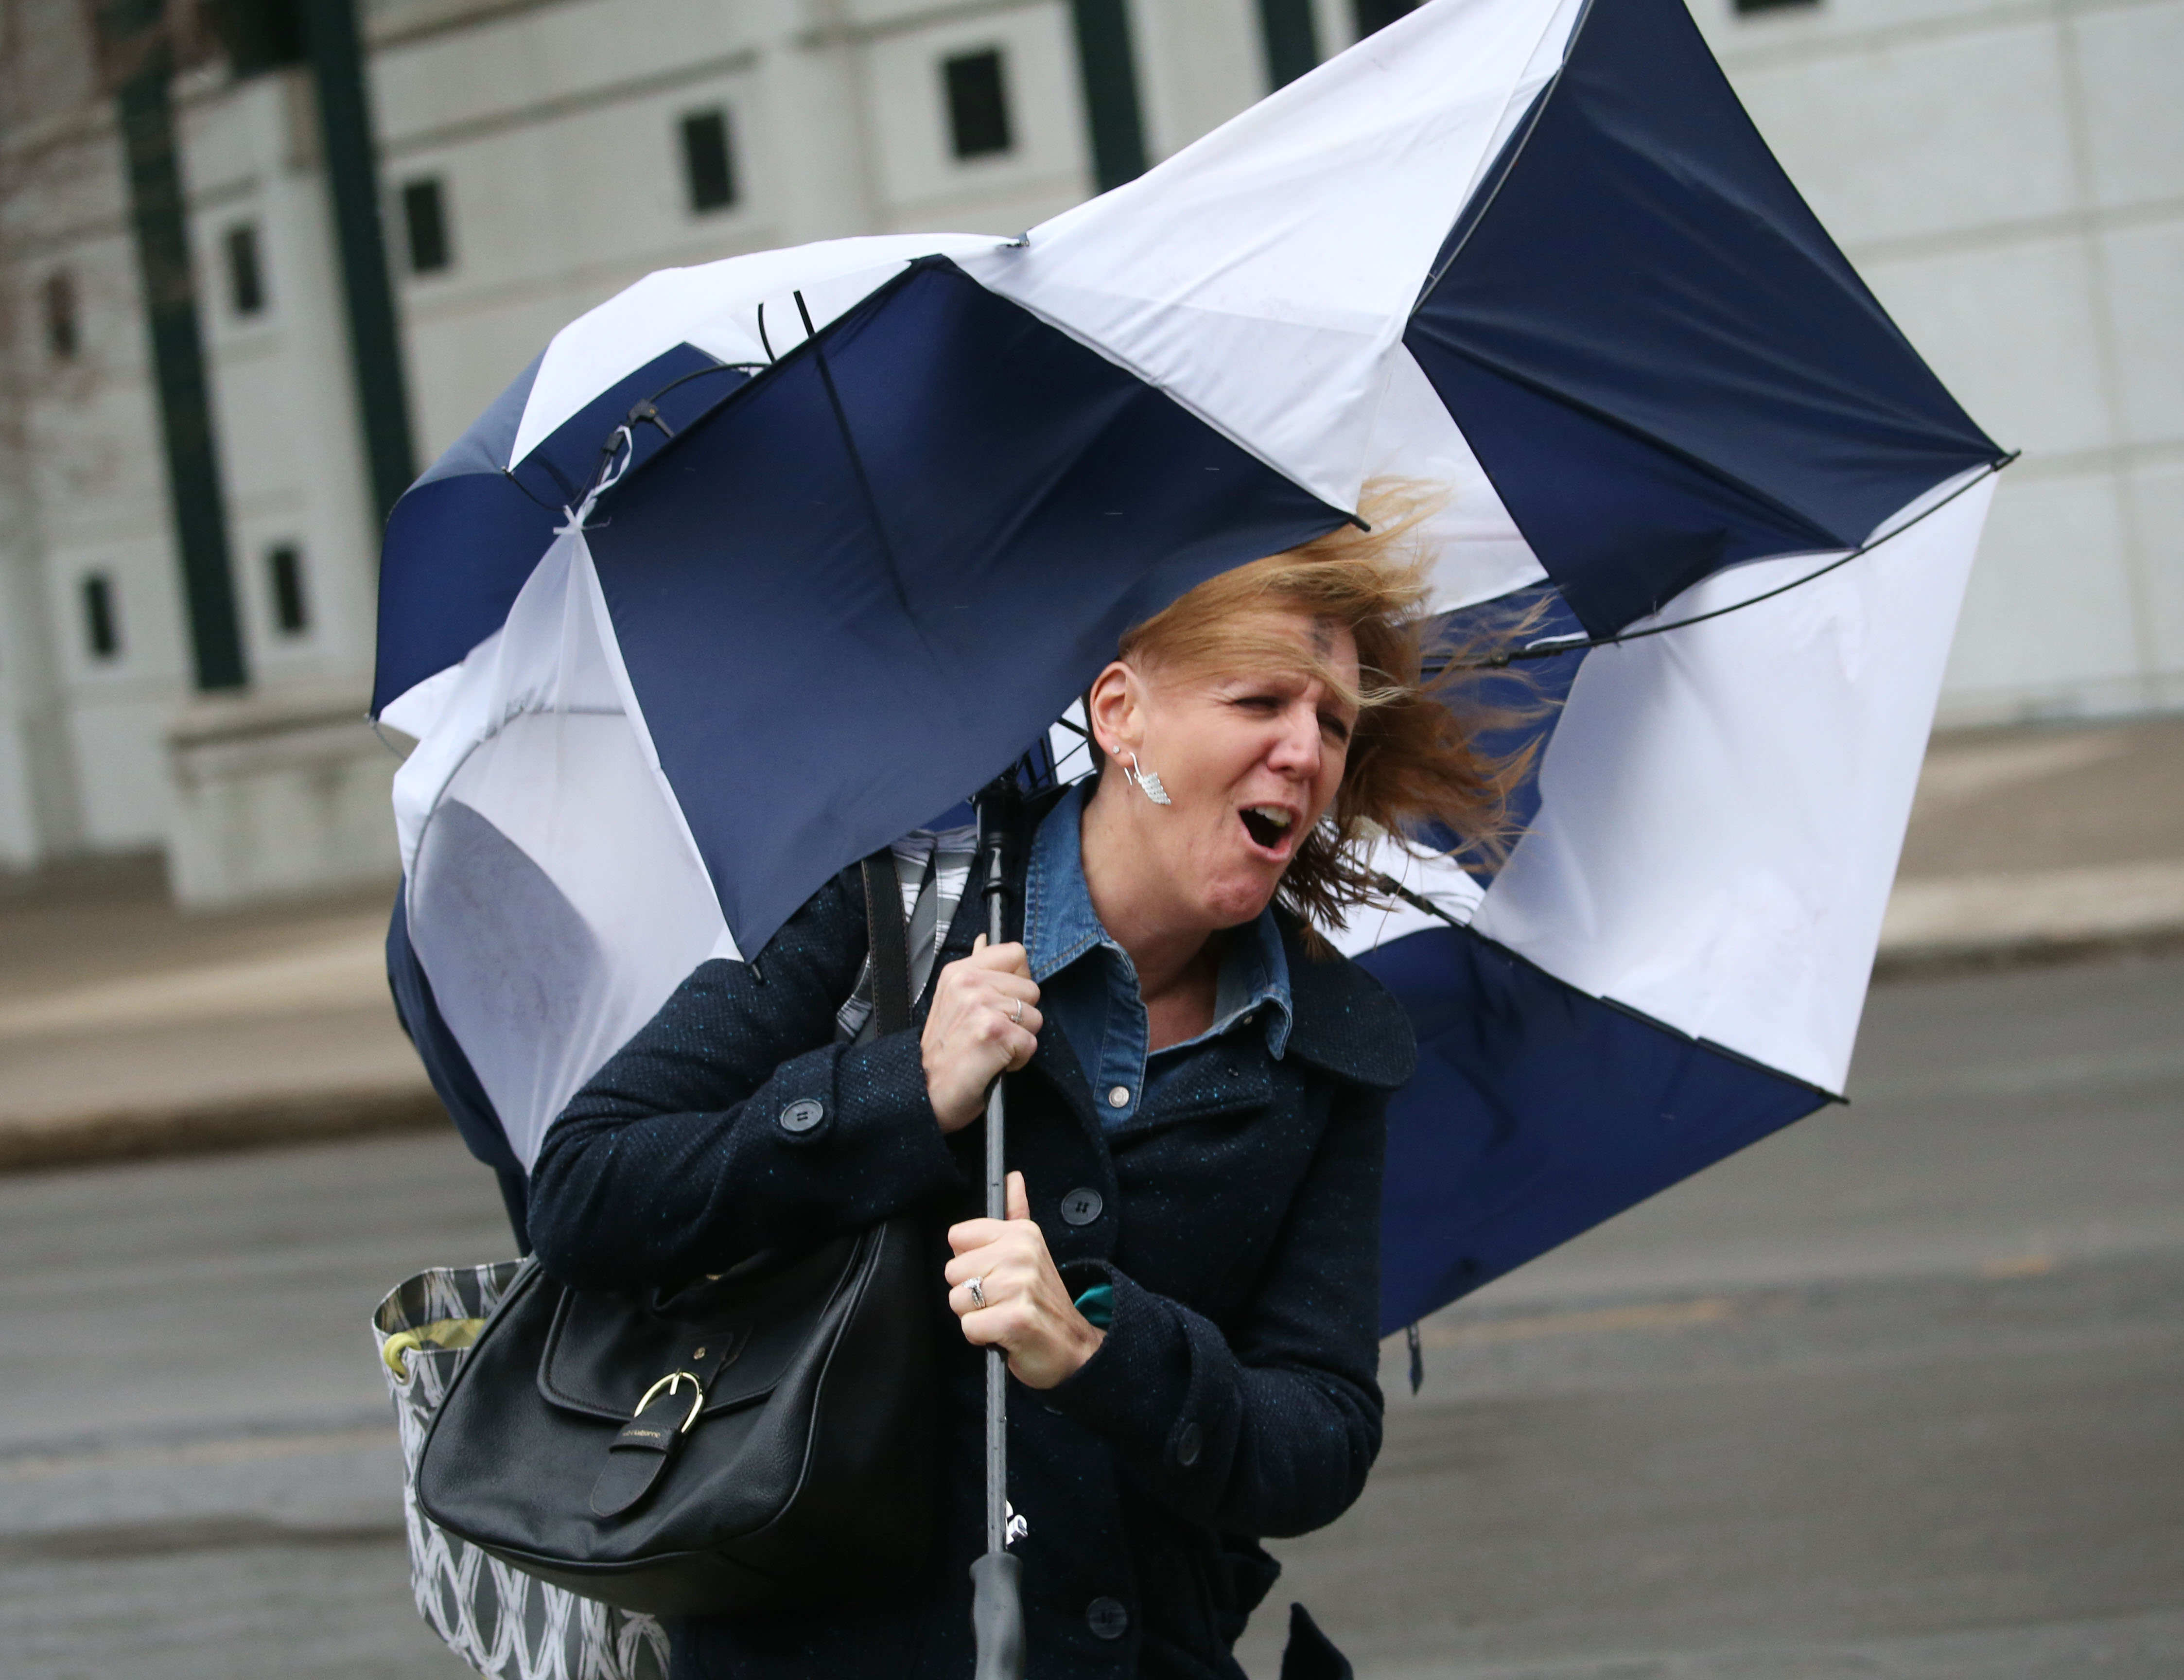 Karen Walkowiak's umbrella meets an early demise as she walks to her car after work on Washington St. during high winds in the late afternoon,  Wednesday, March 1, 2017.  (Sharon Cantillon/Buffalo News)